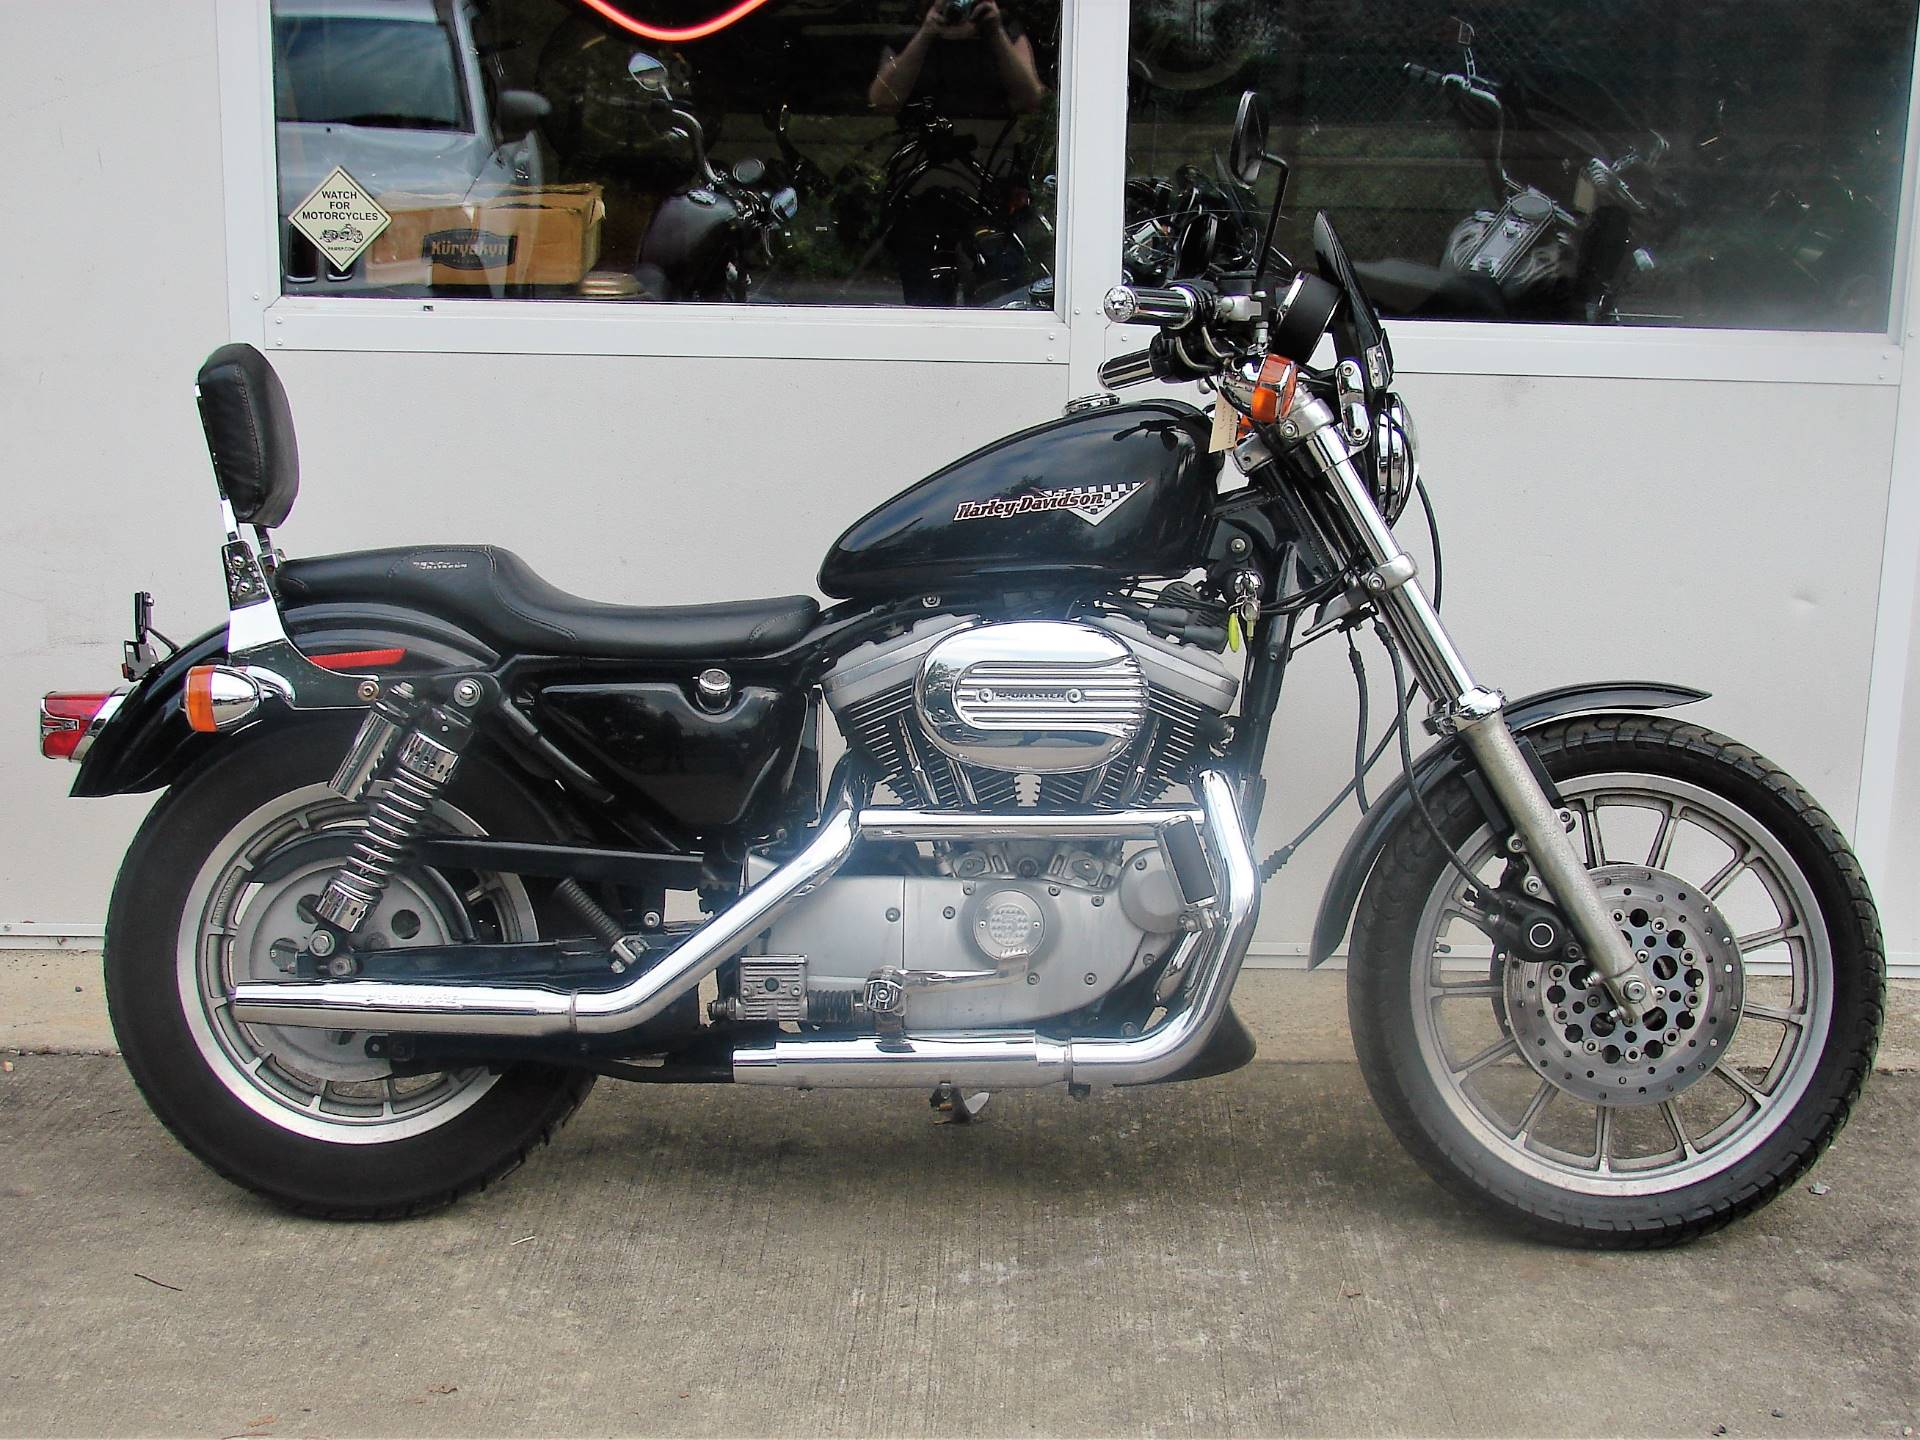 1998 Harley-Davidson XL 1200cc Sportster Sport  -  (Black w/ Maroon Logo) in Williamstown, New Jersey - Photo 1